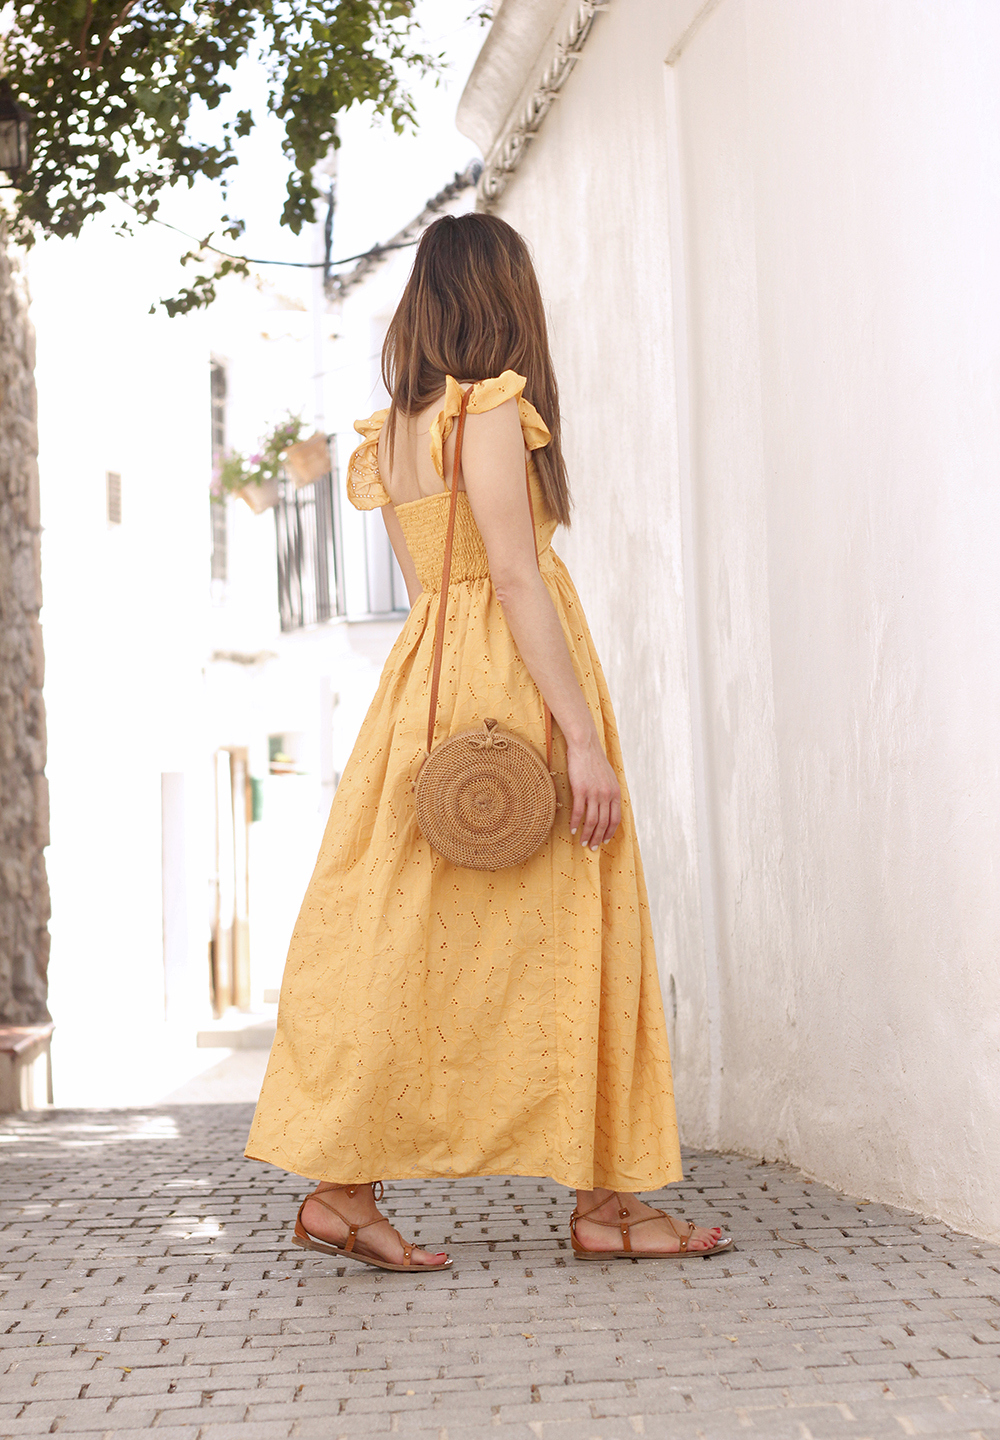 mustard embroidered midi dress straw bag street style outfit 2019 vacation ibiza5